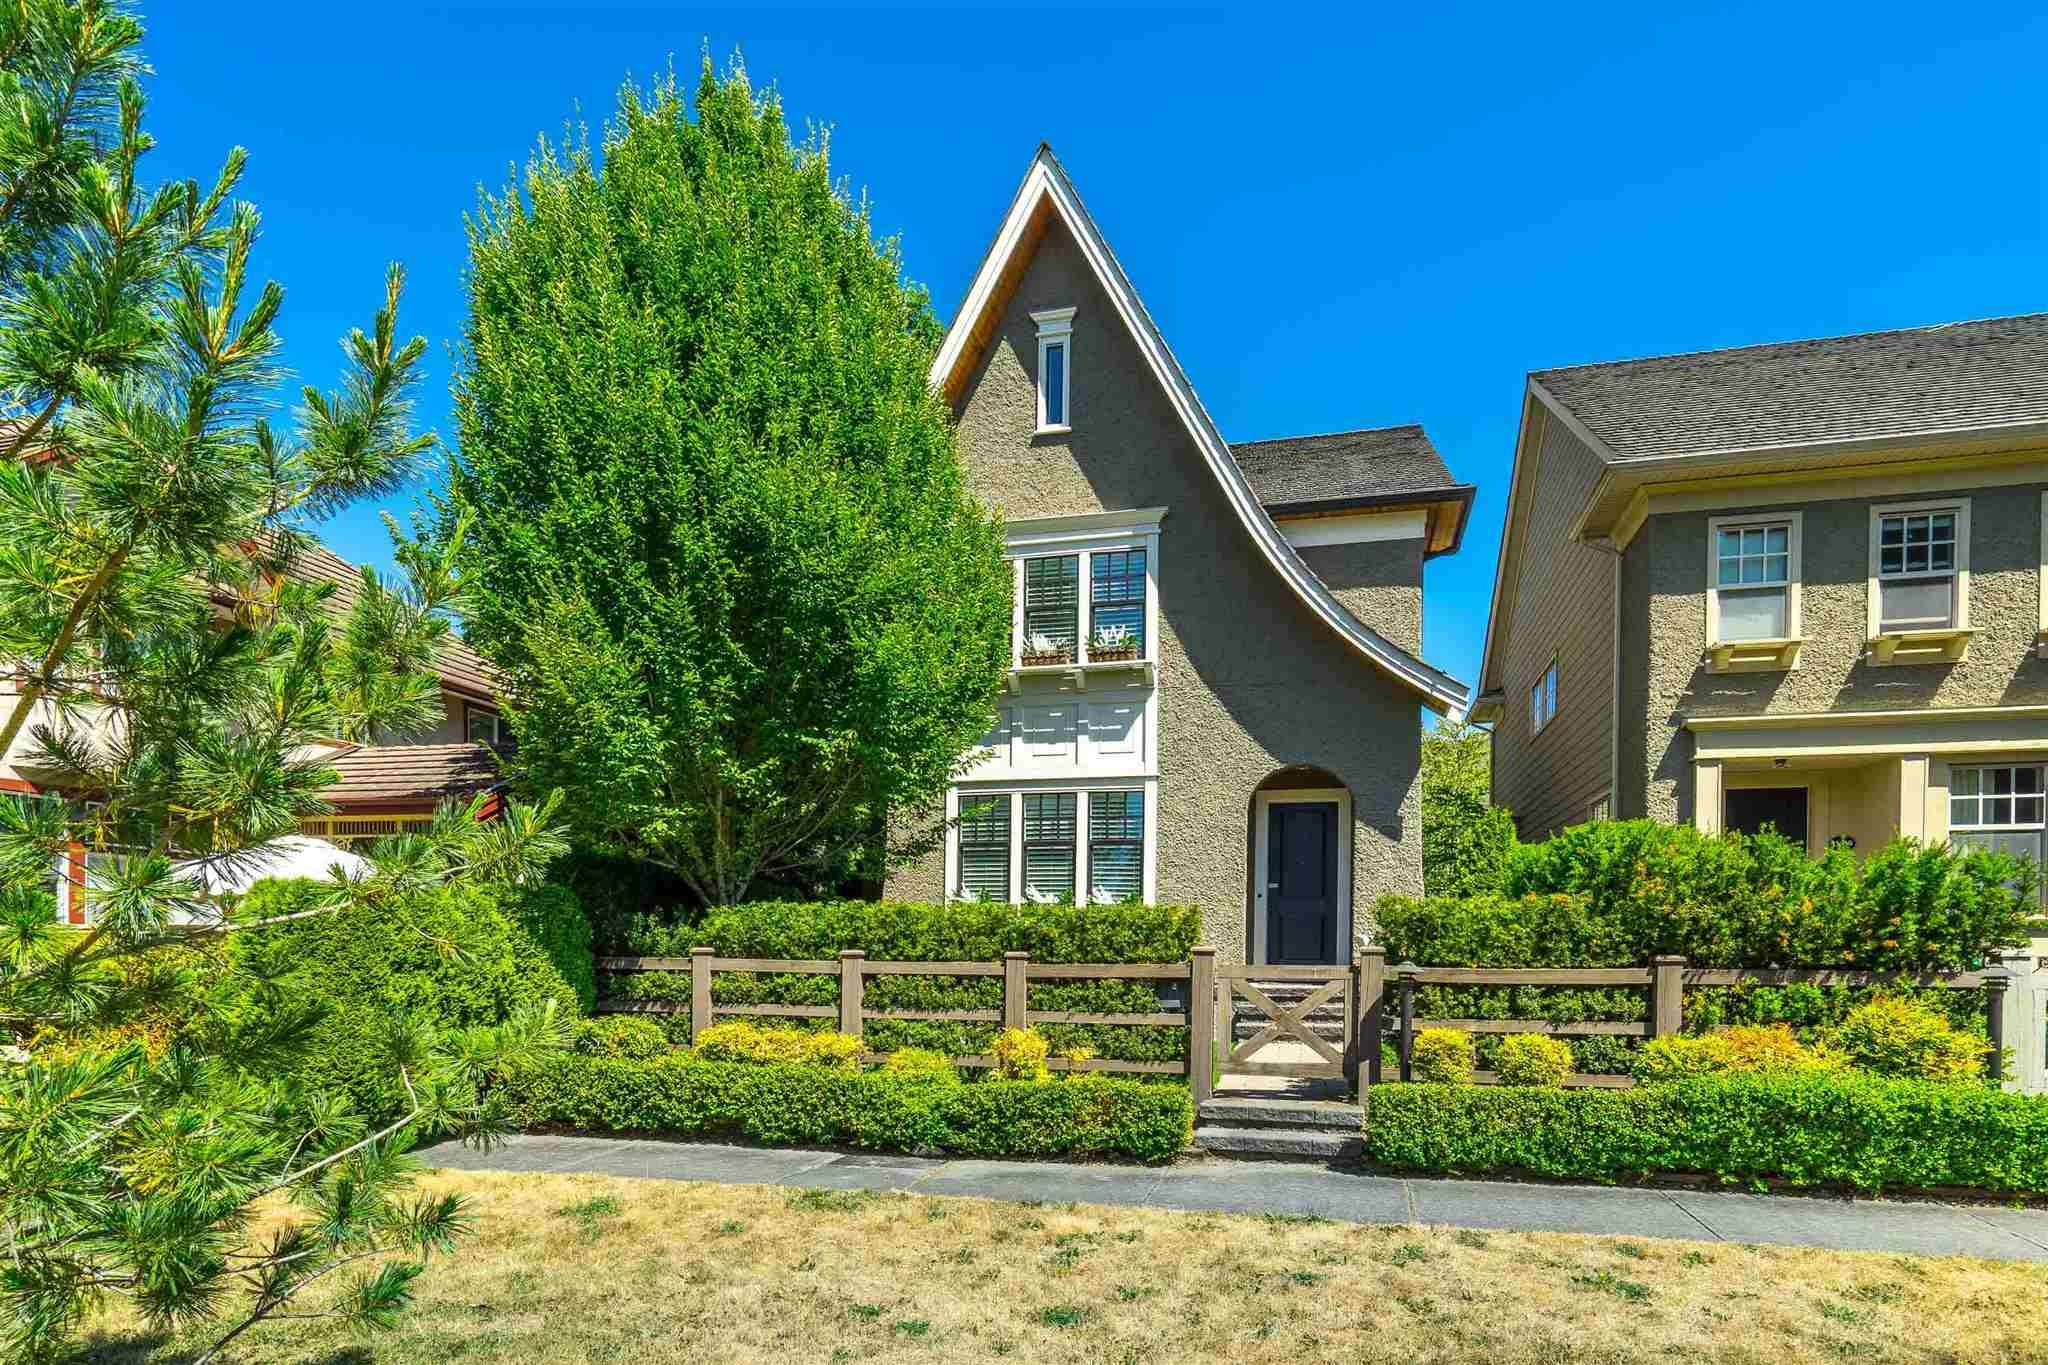 """Main Photo: 15363 34 Avenue in Surrey: Morgan Creek House for sale in """"Rosemary Heights"""" (South Surrey White Rock)  : MLS®# R2598308"""